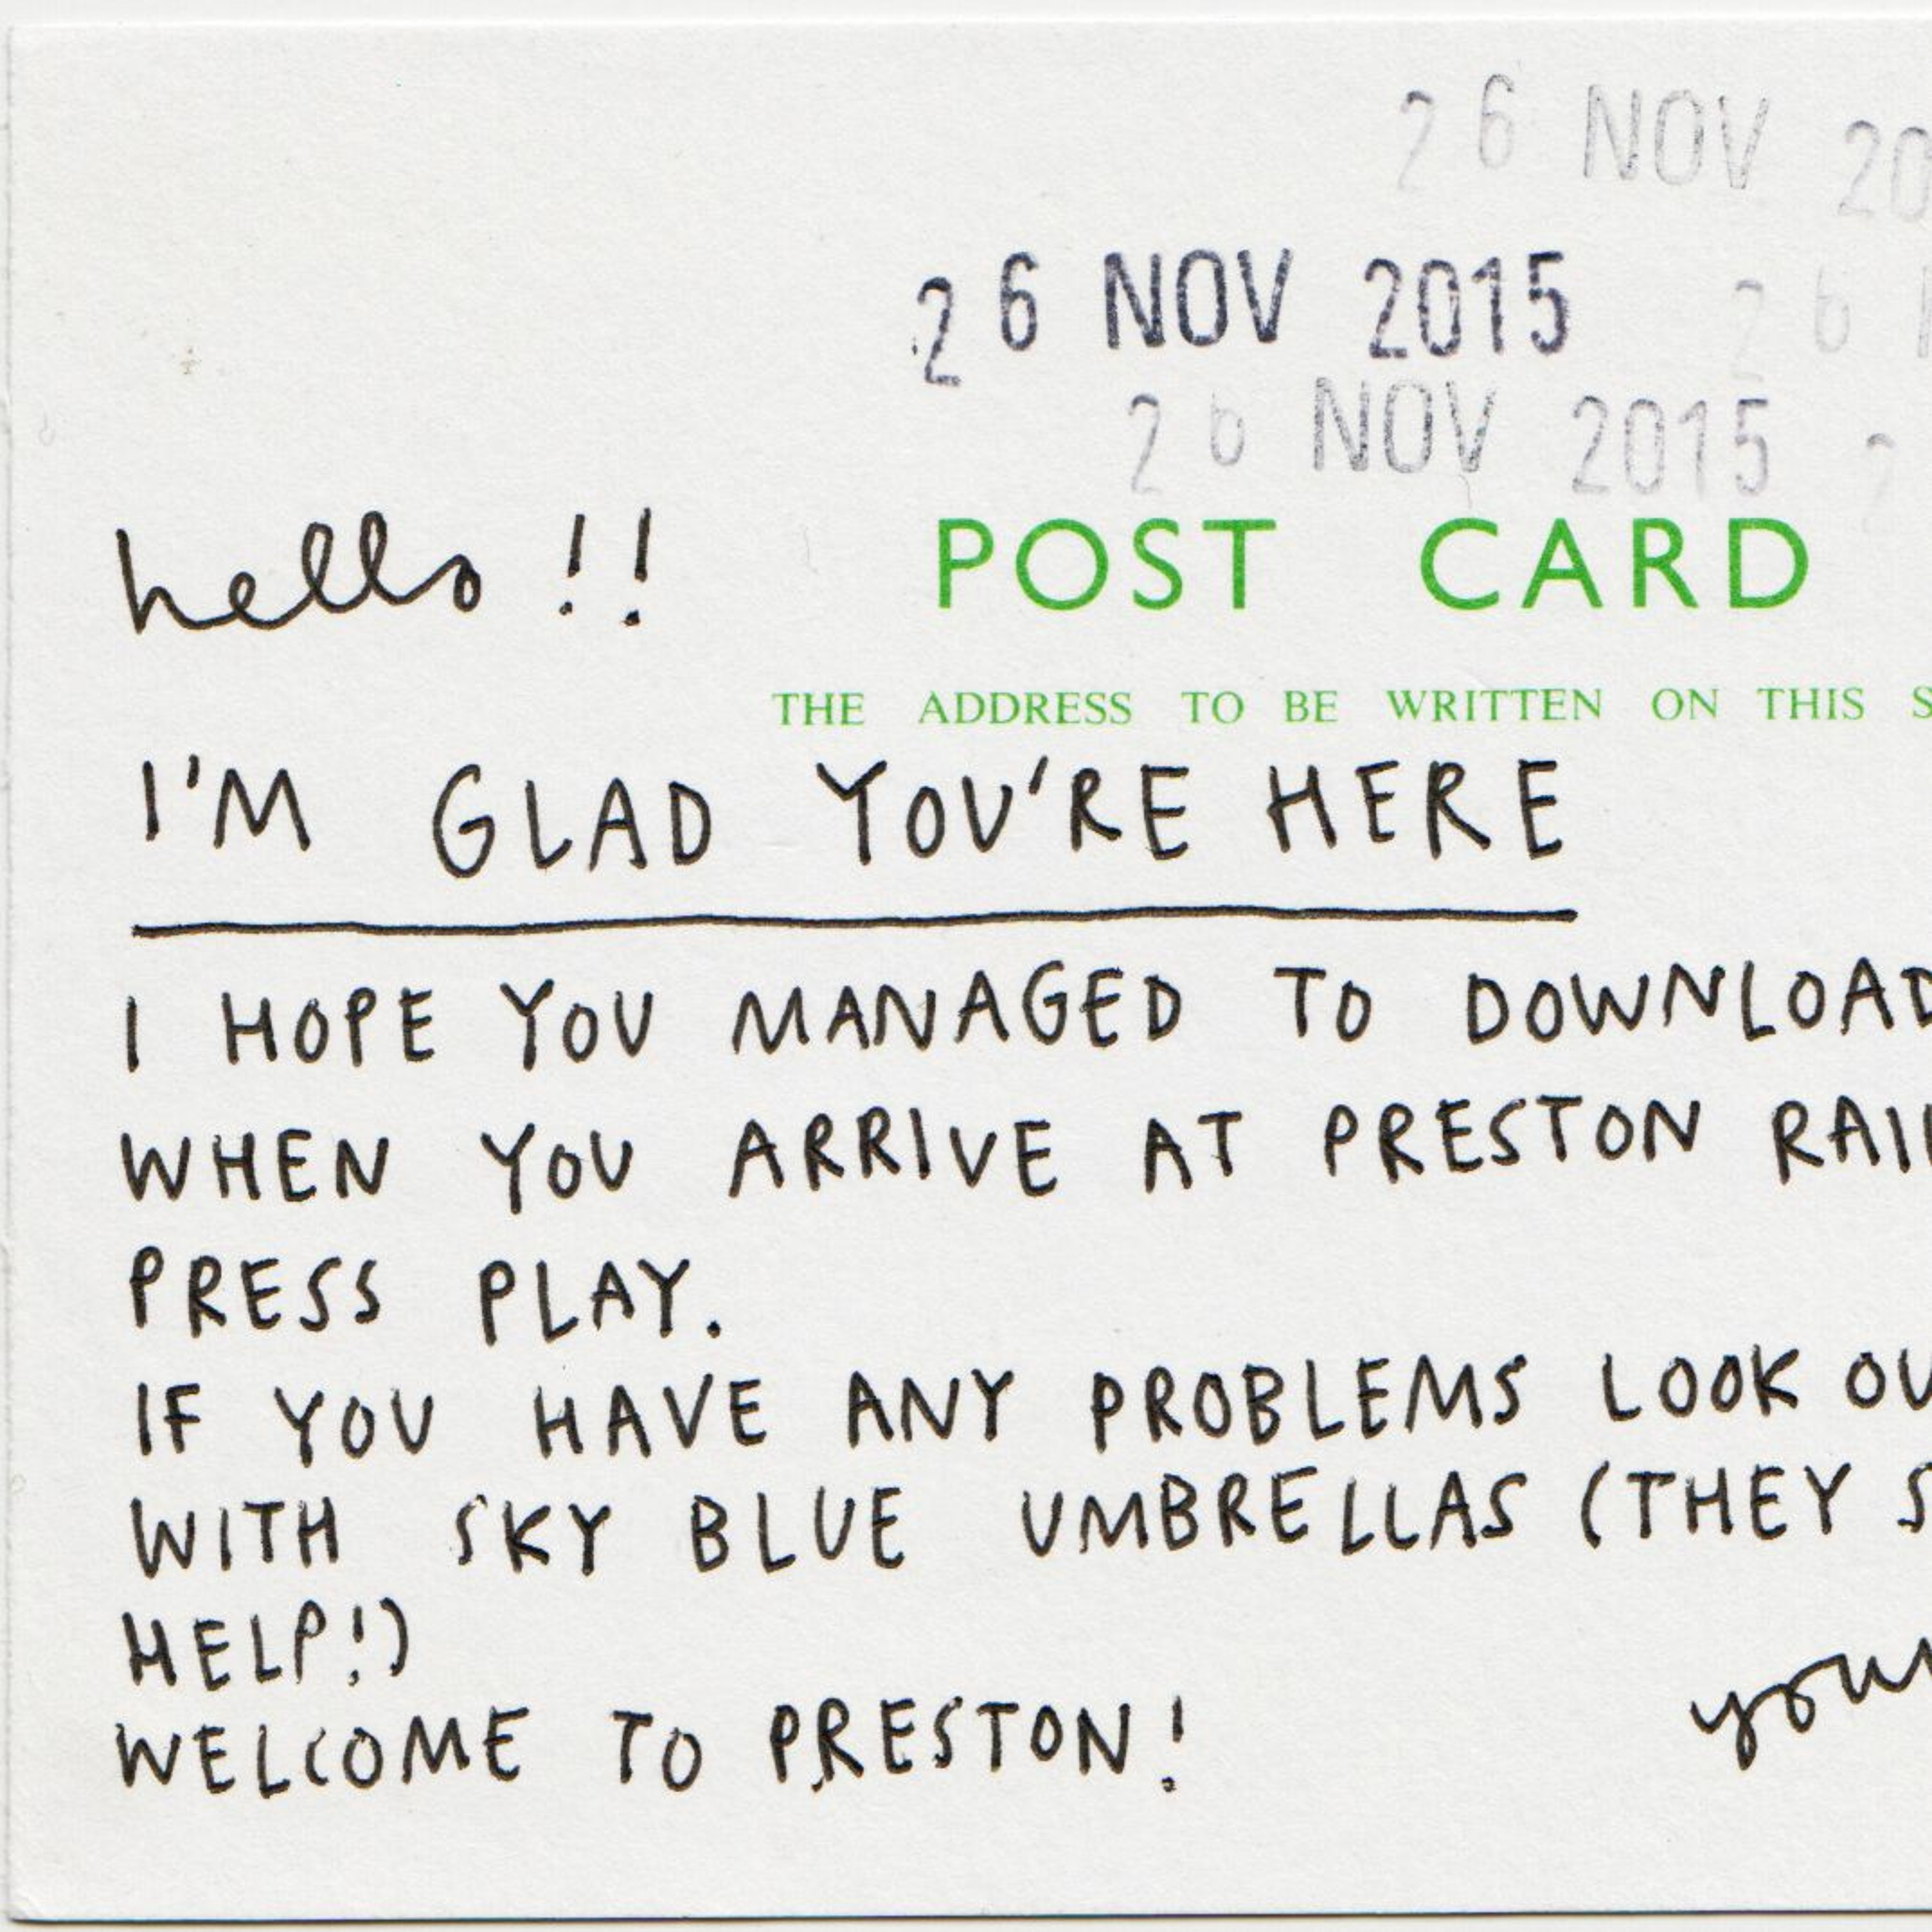 I'm Glad You're Here by Lowri Evans